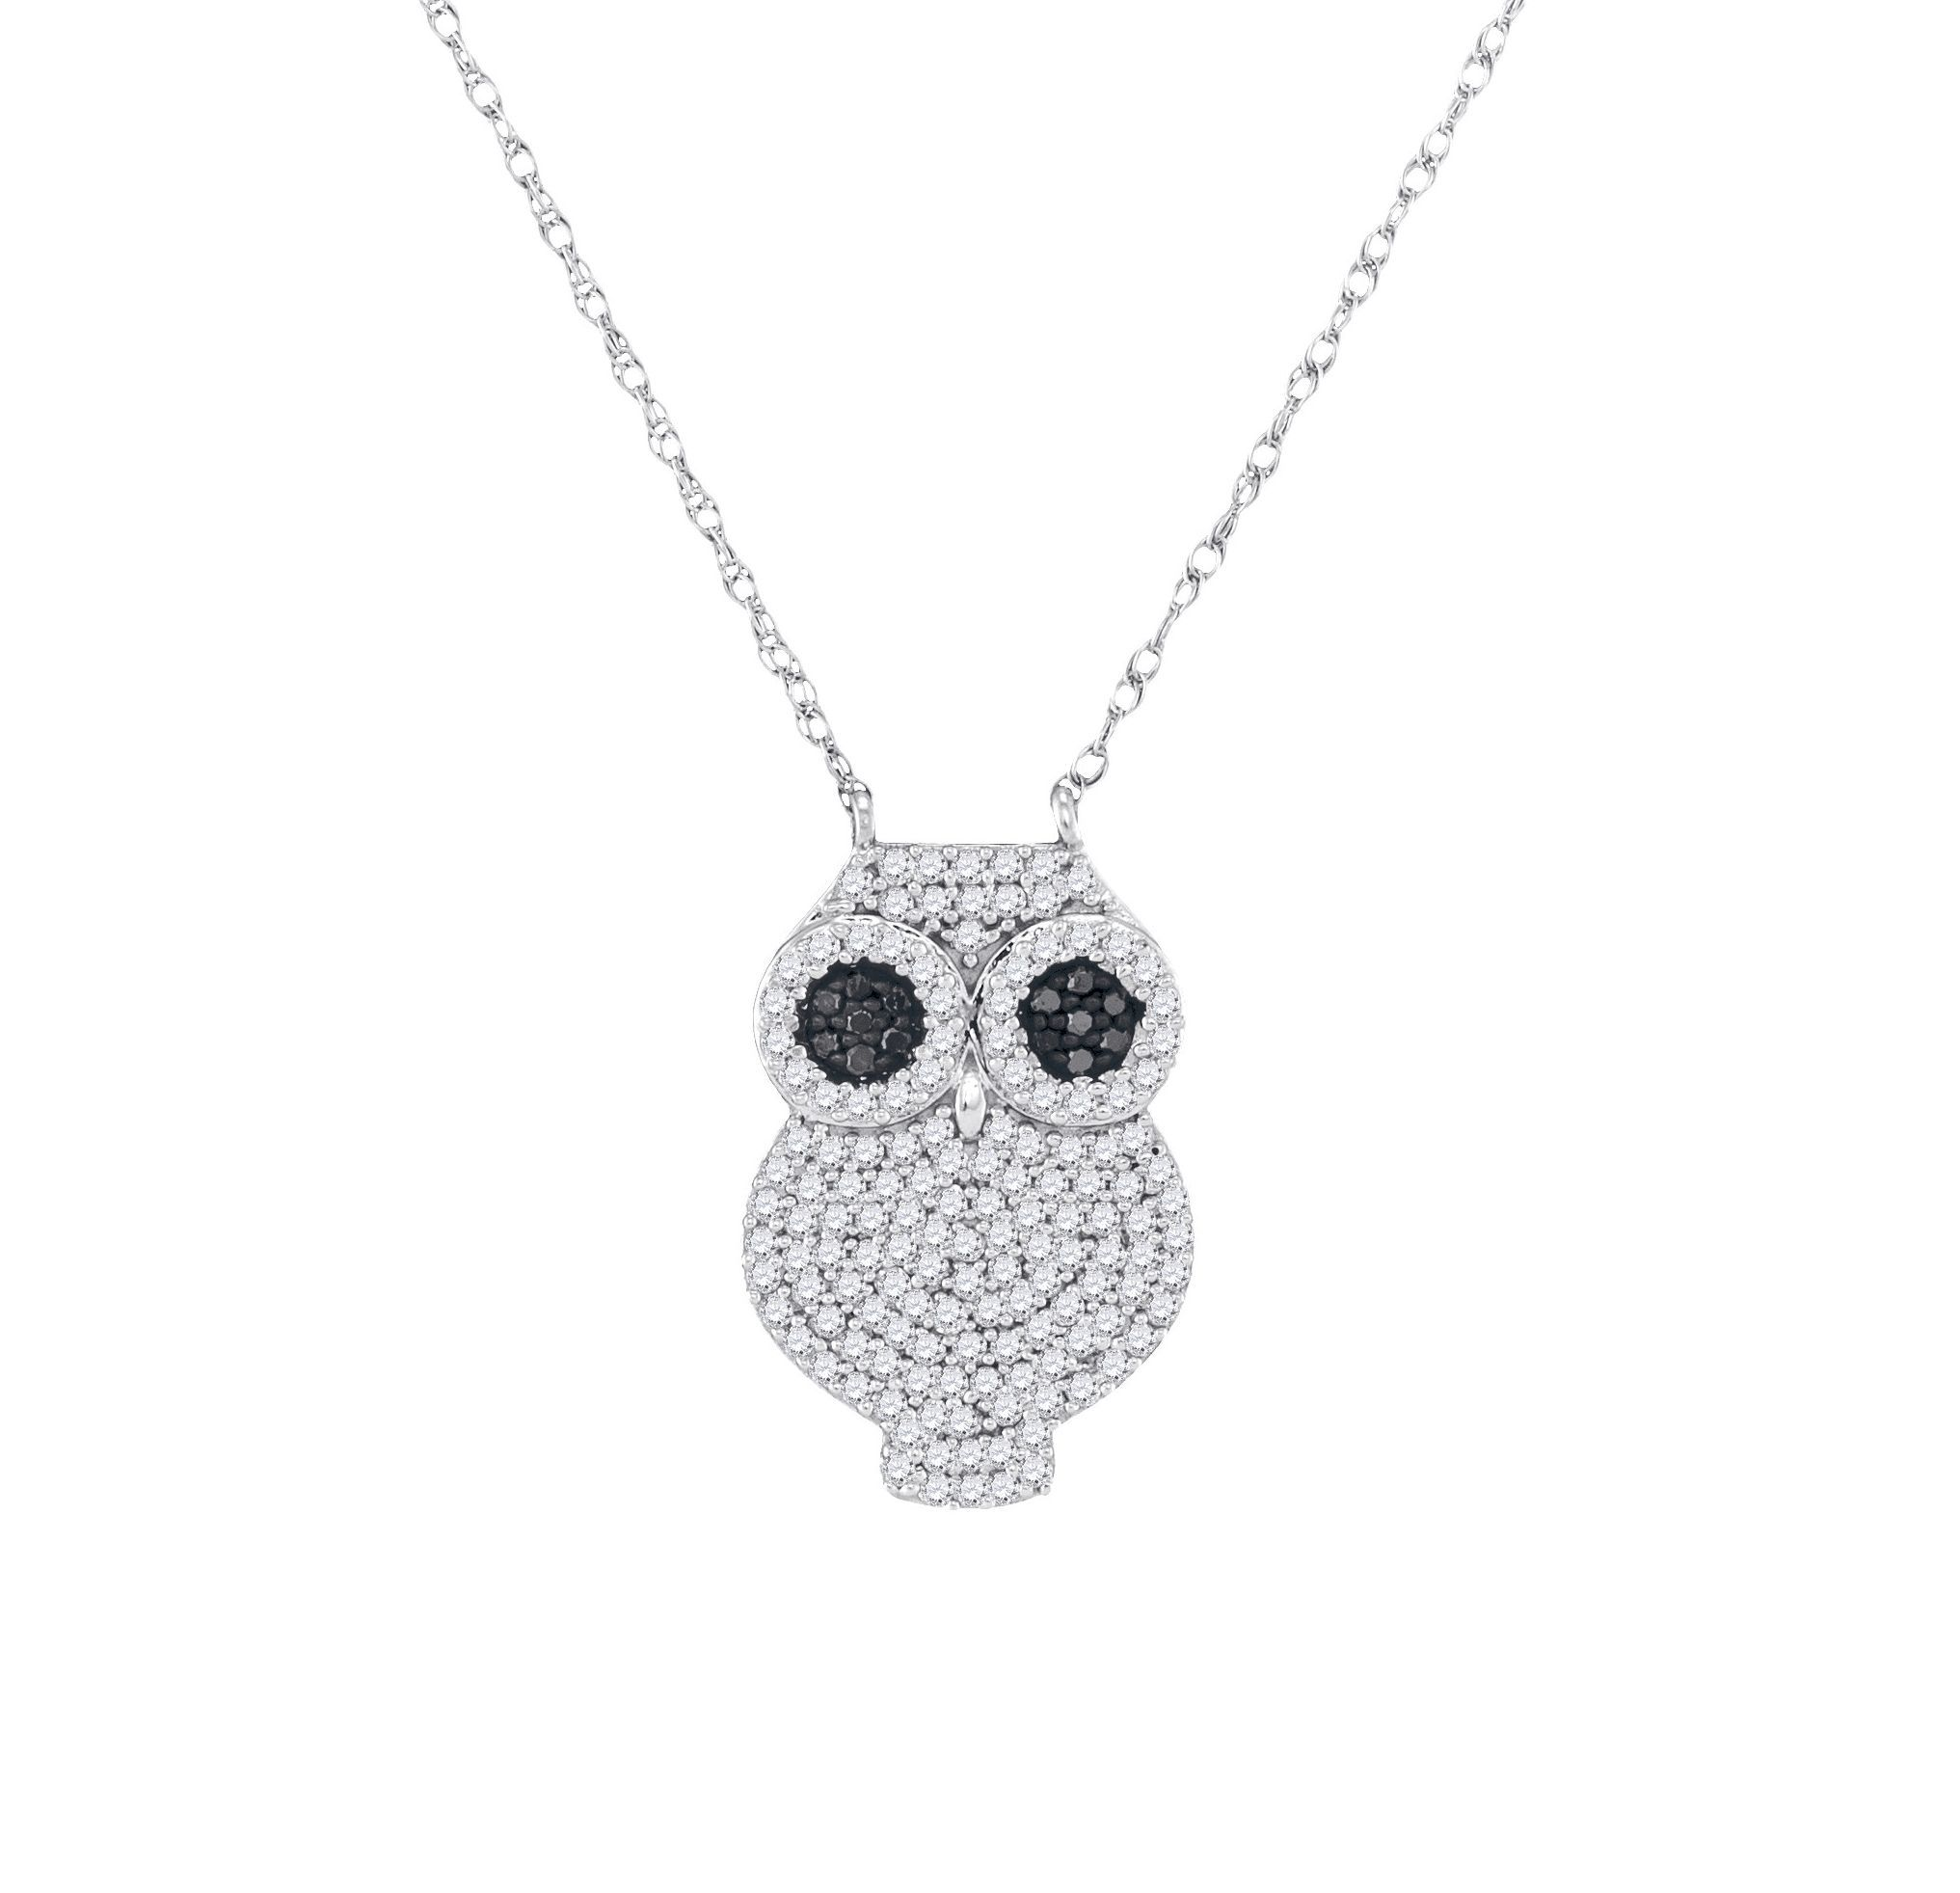 bird pendant necklace gold owl black cosanuova jewelry diamond white in necklaces